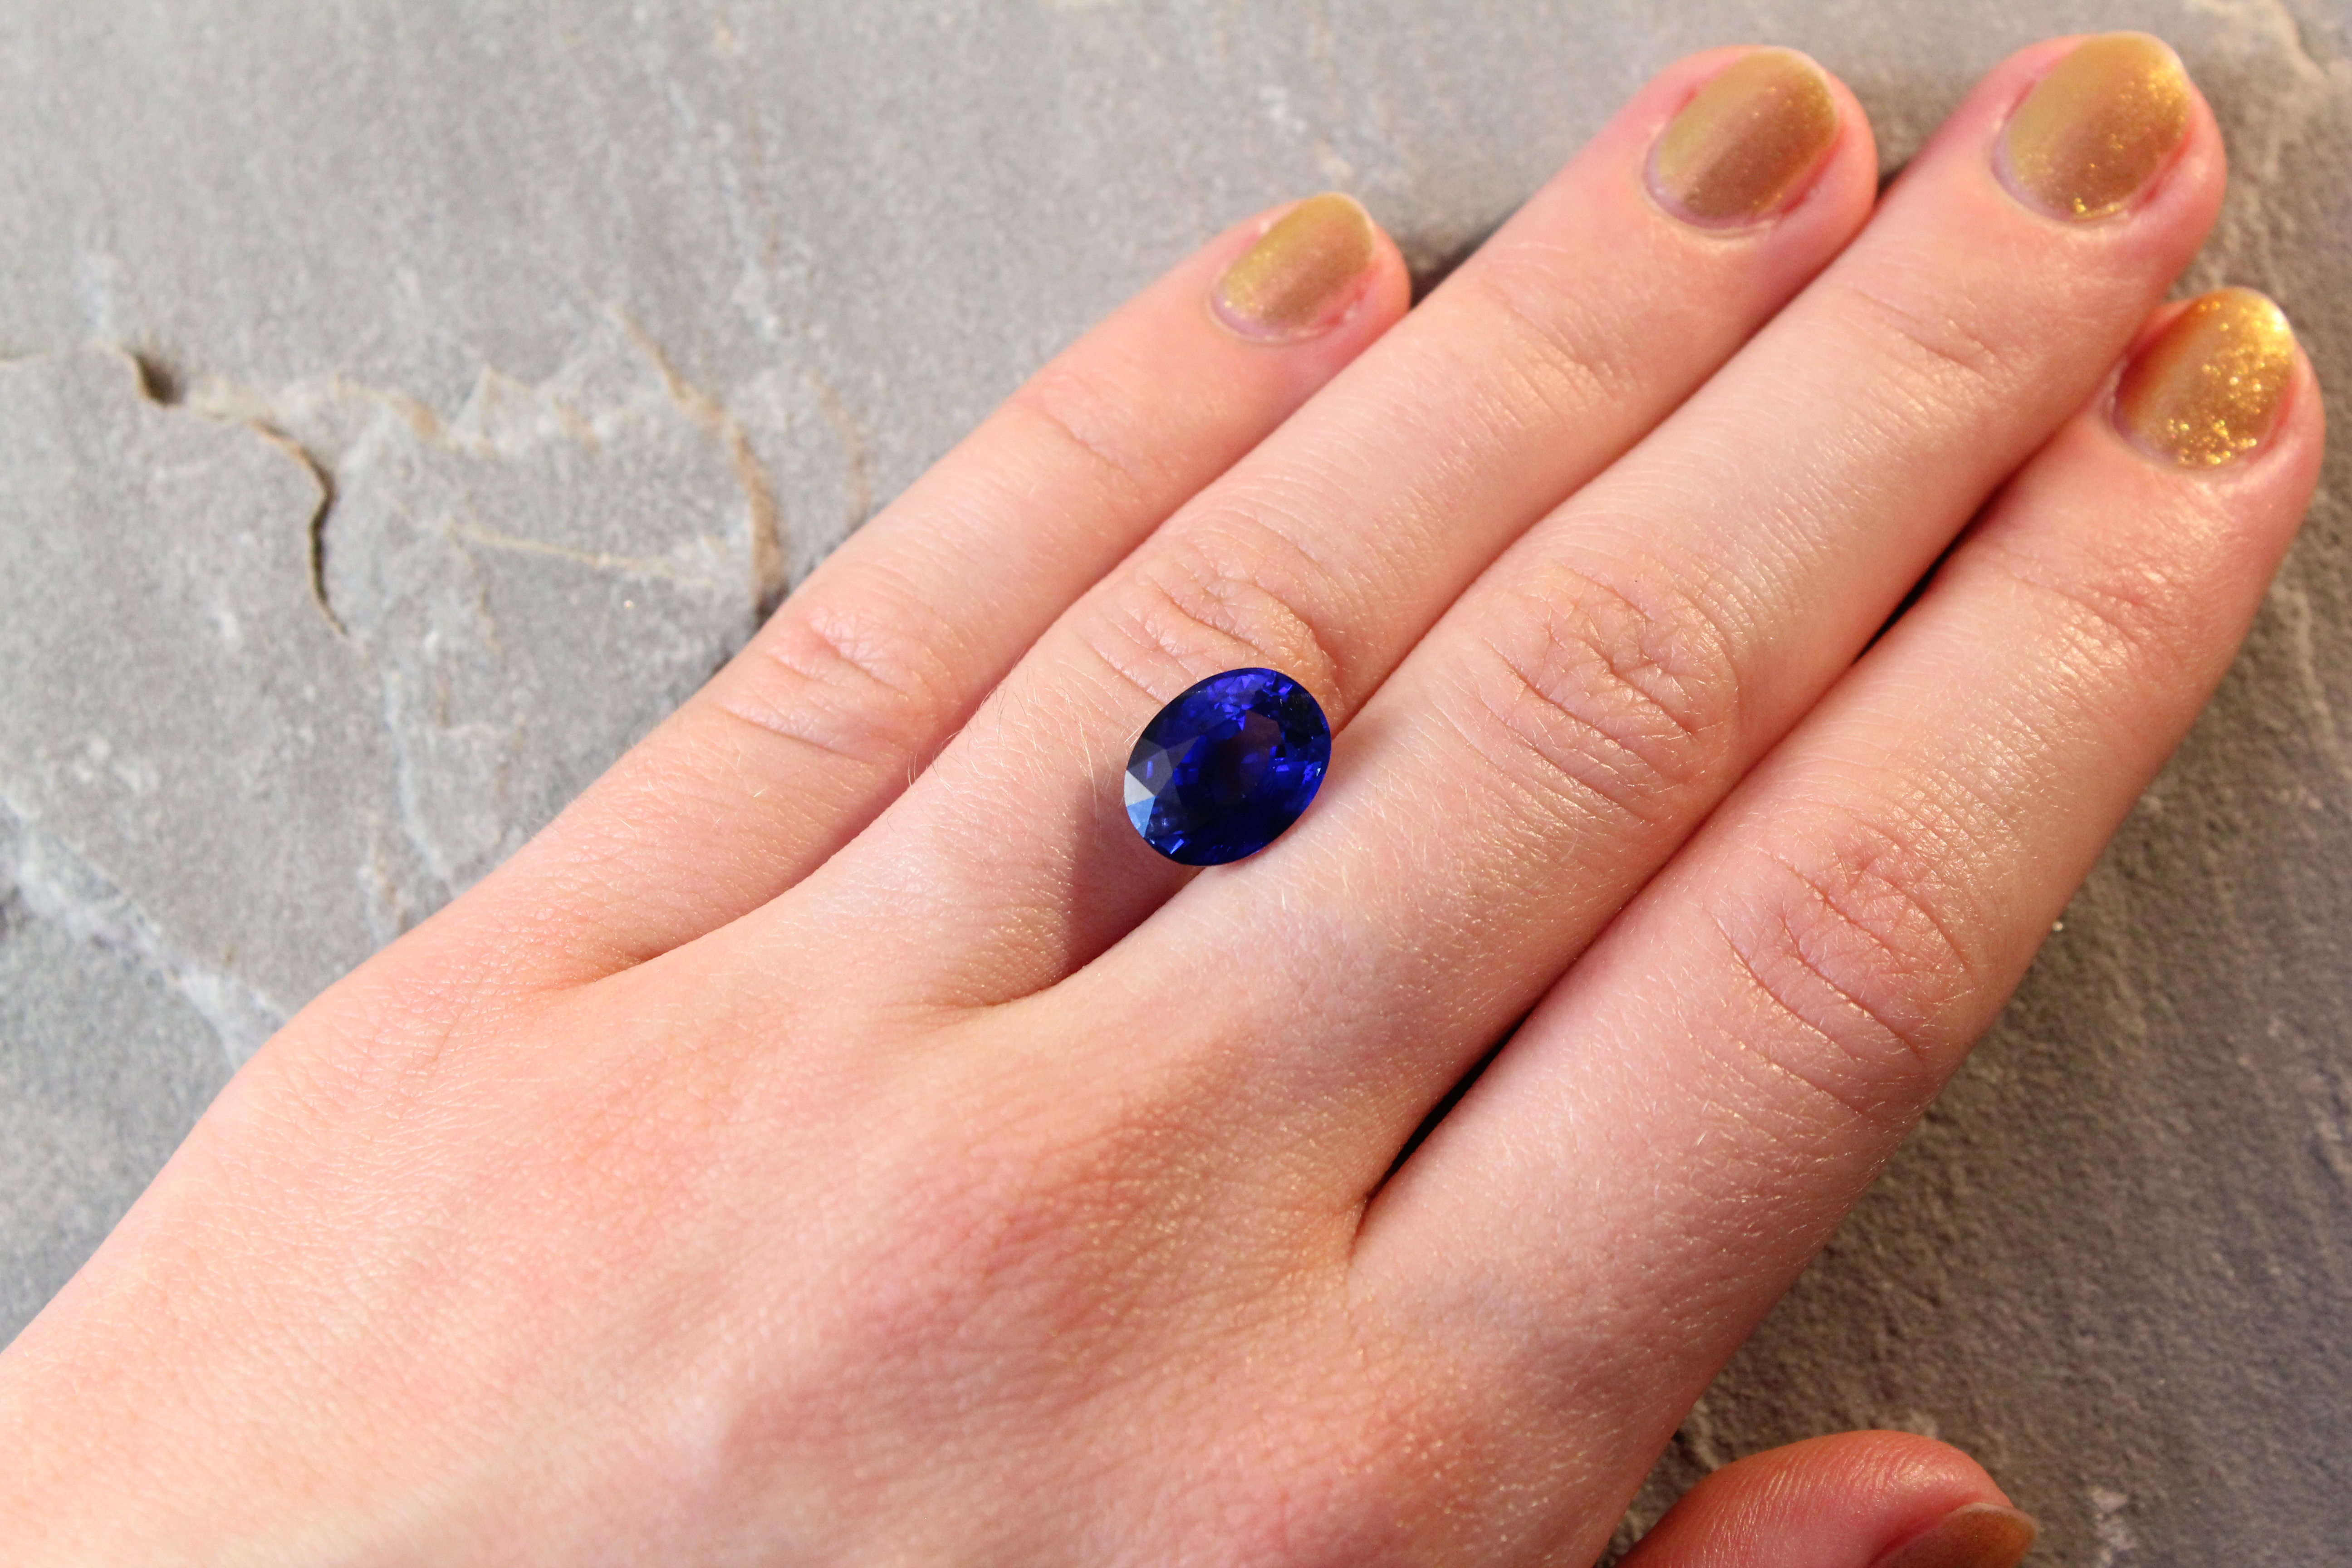 4.75 ct royal blue oval sapphire